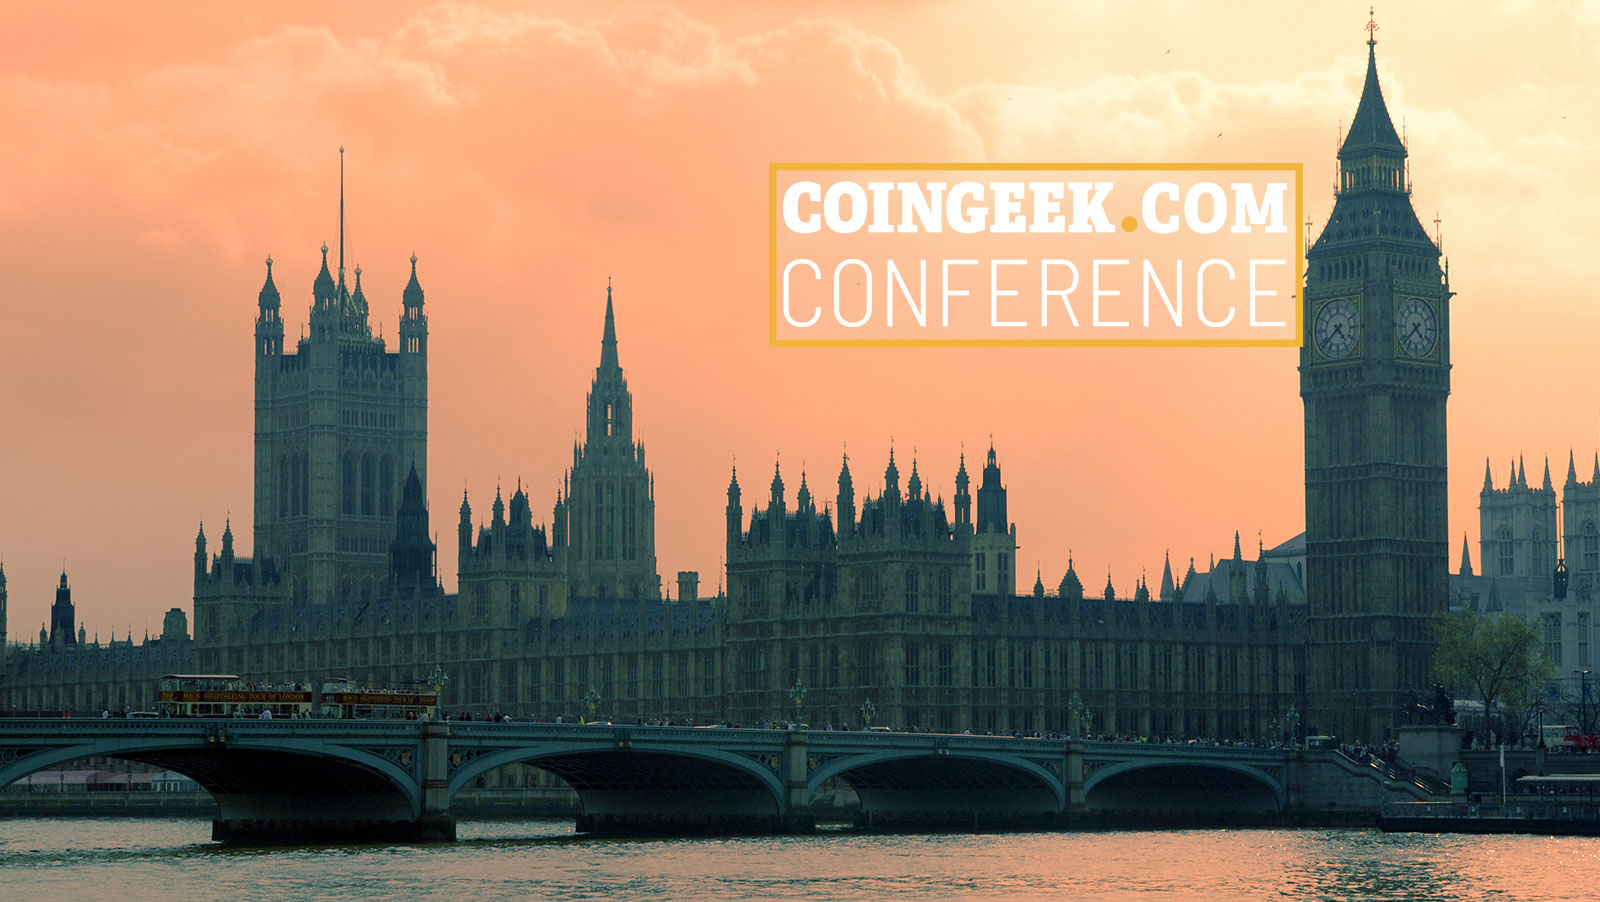 Becky's Affiliated: A personal invitation from Calvin: why iGaming companies should attend the CoinGeek Week Conference